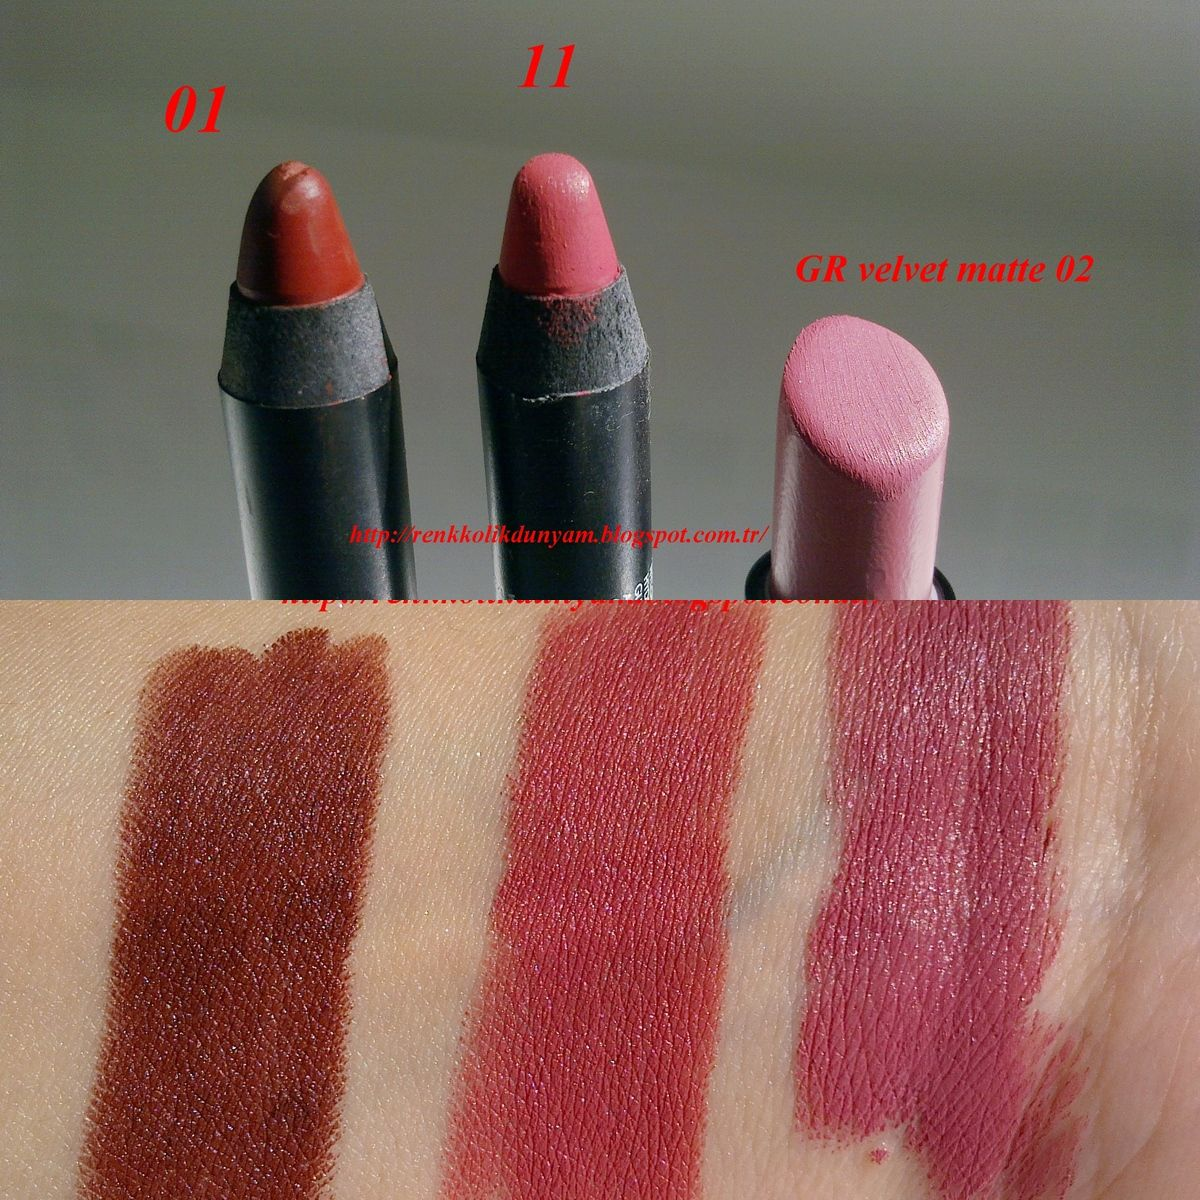 Goldenrose Matte Lipstick Crayon 11 Ve Golden Rose Velvet